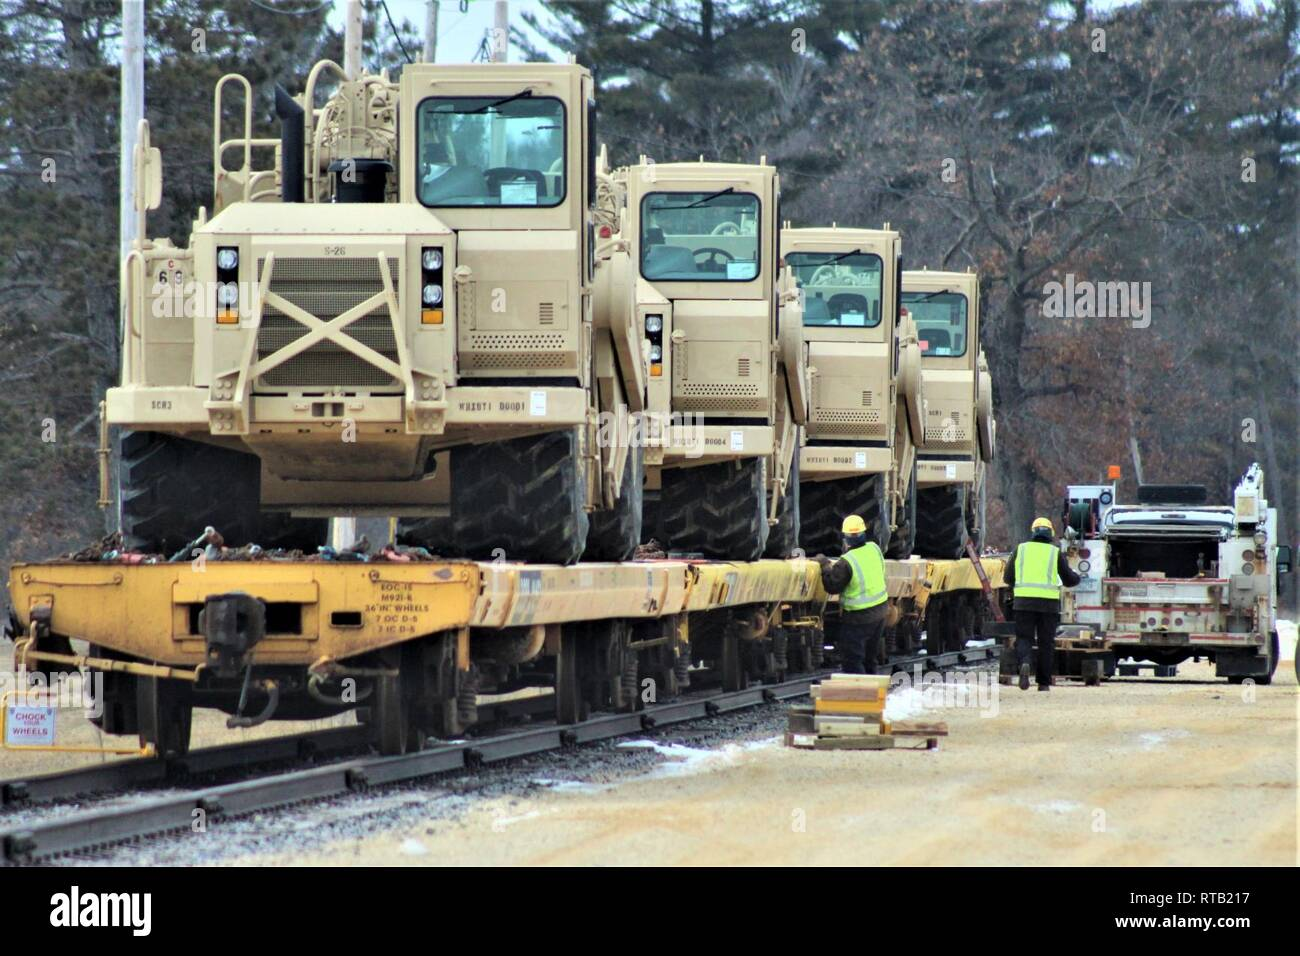 Military vehicles and equipment with the 389th Engineer